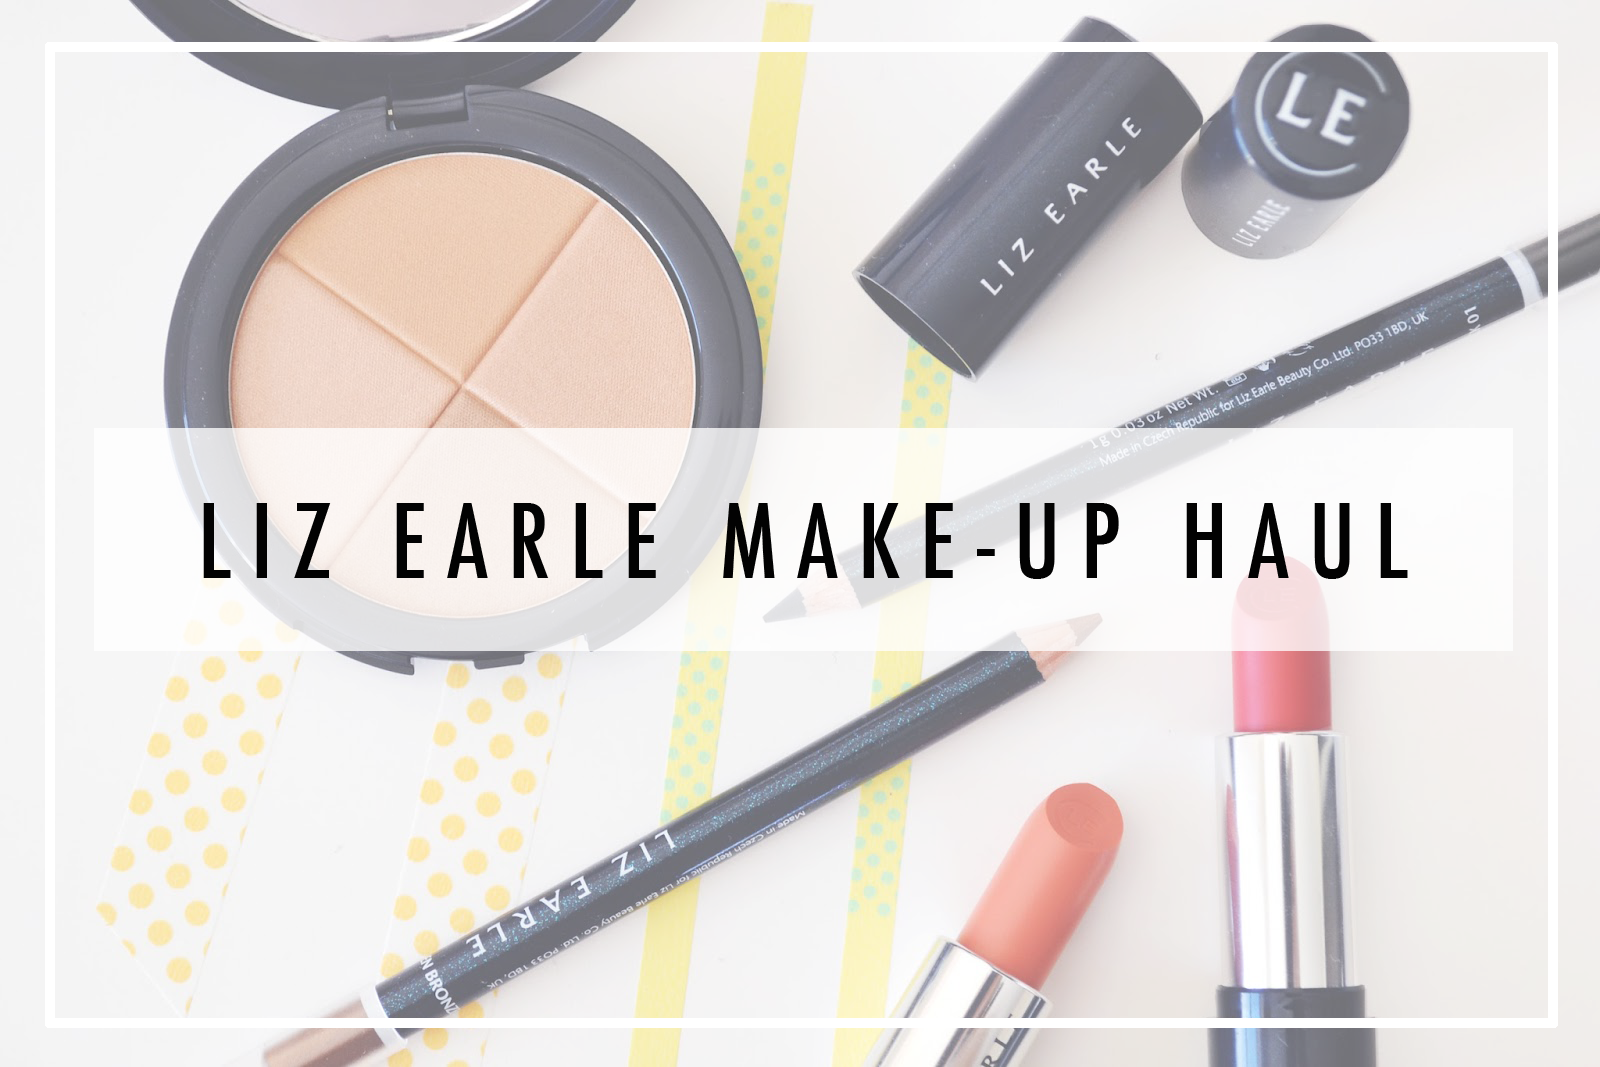 liz earle make up review, liz earle beauty products